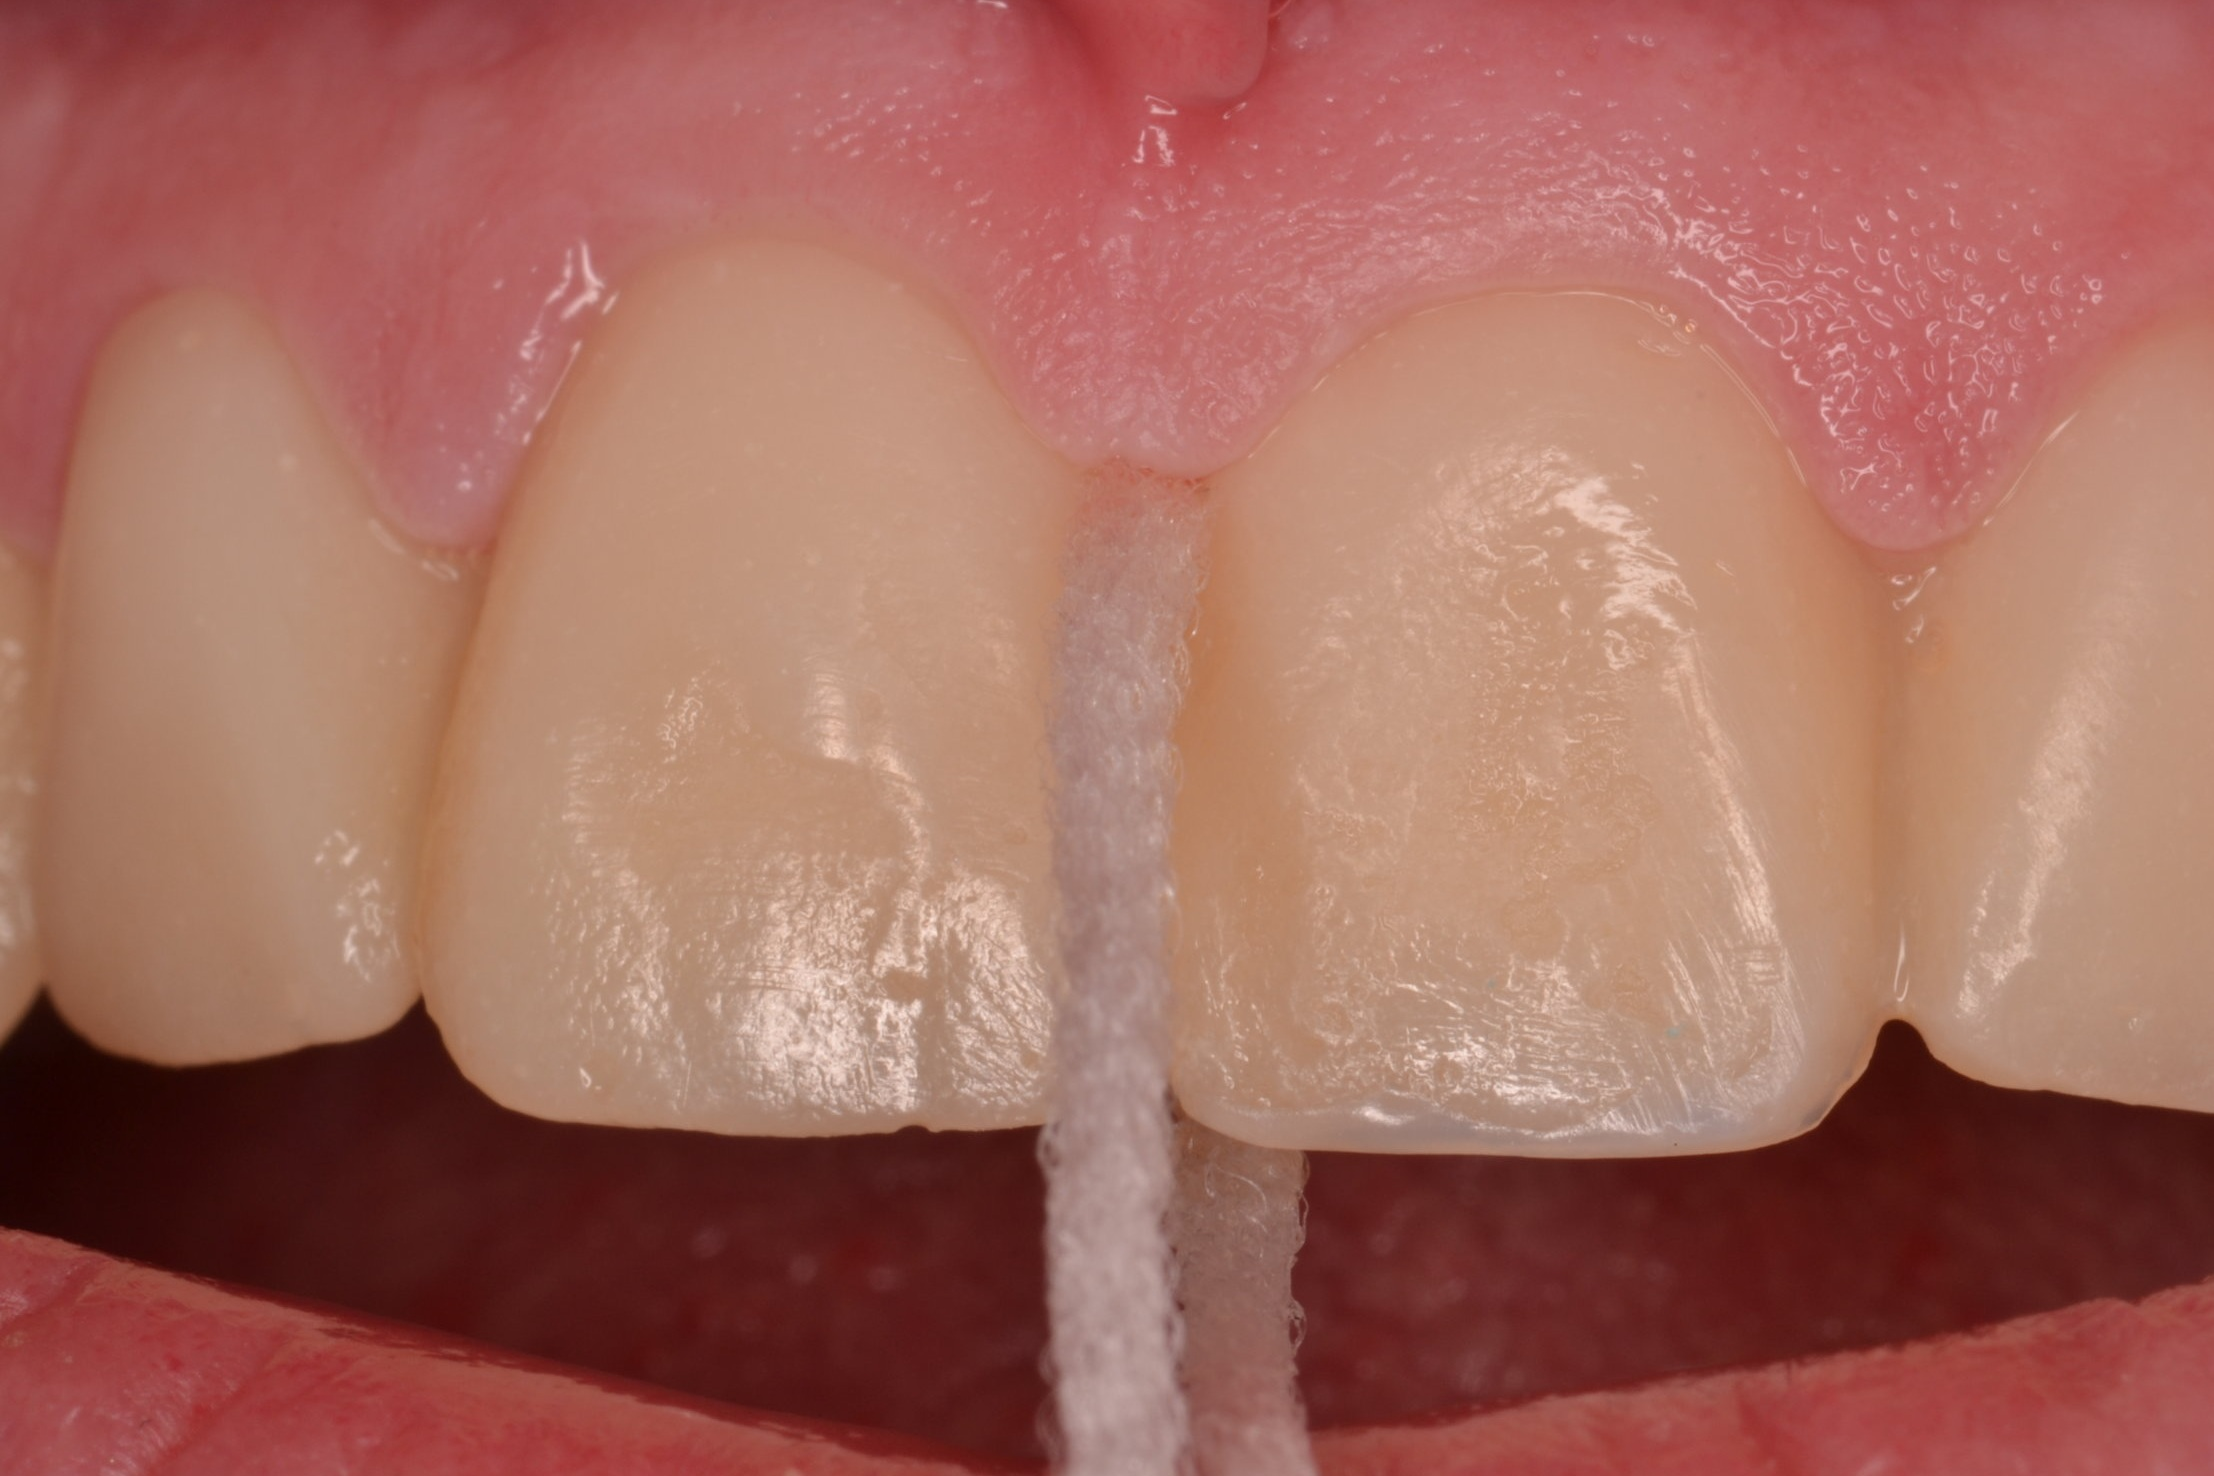 Figure 10; passing super-floss through healthy gingival embrasures post-operatively.